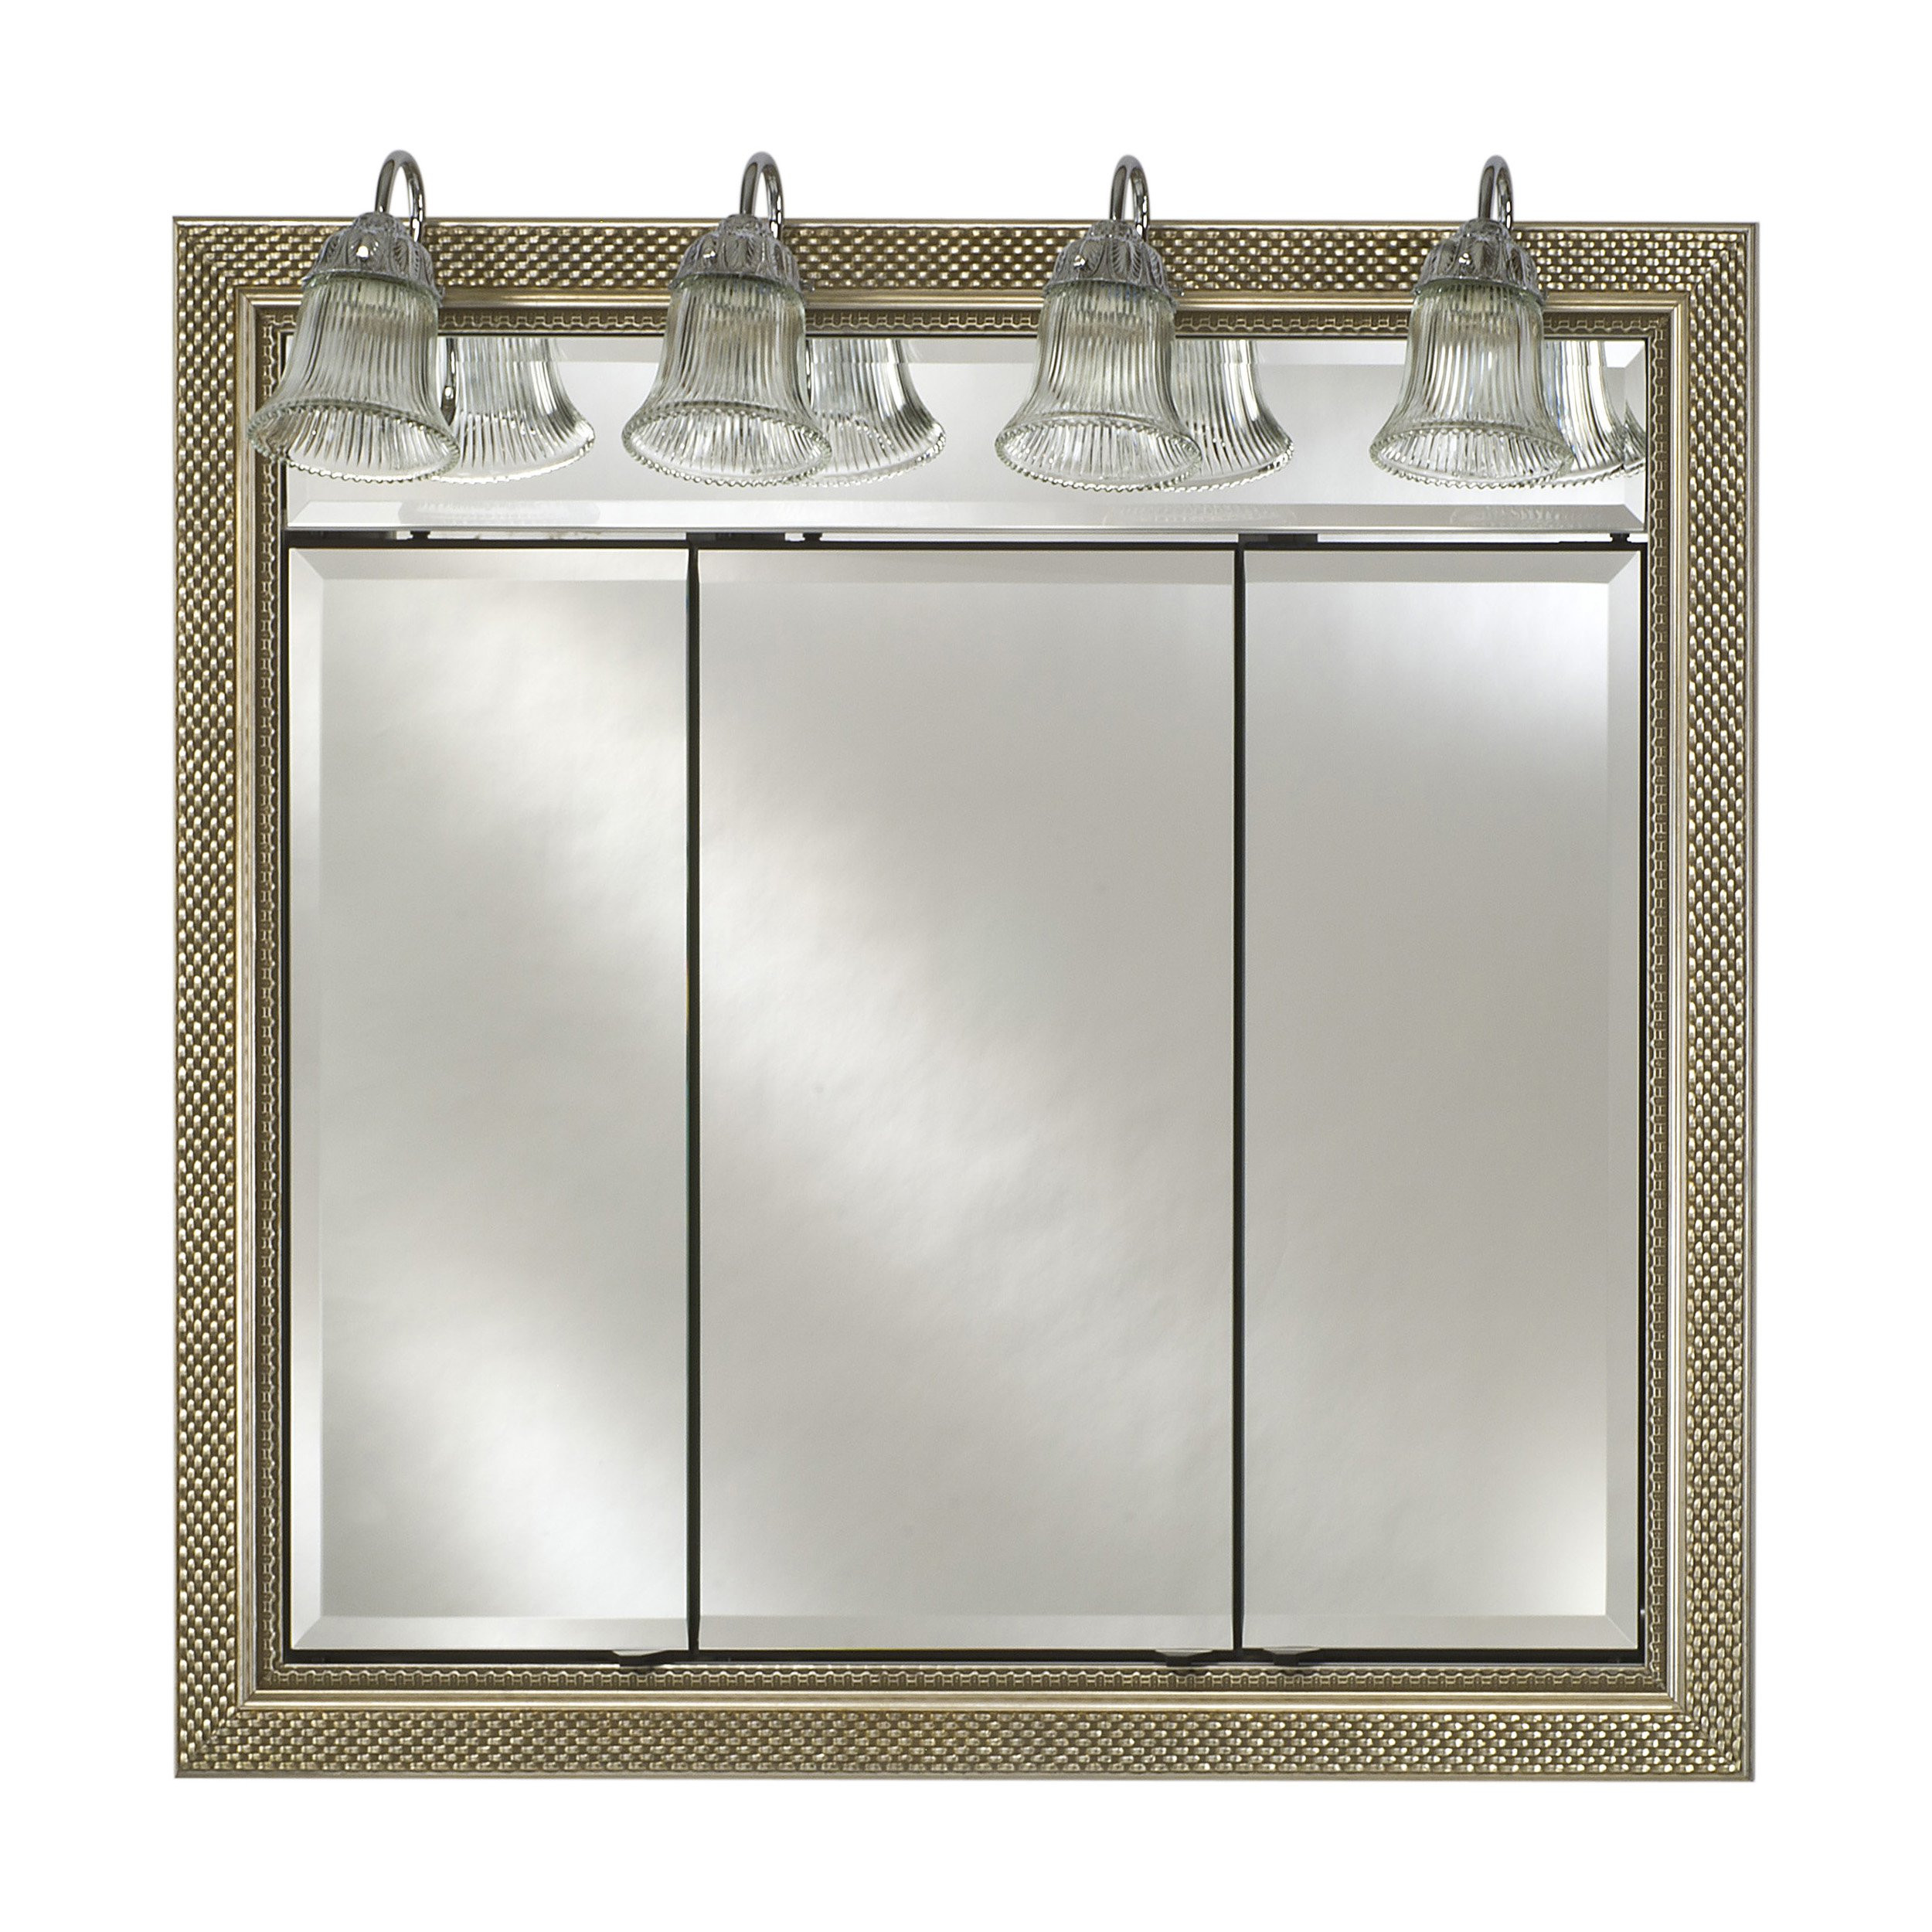 Best ideas about Lighted Medicine Cabinet . Save or Pin Afina Signature Traditional Lighted Triple Door 44W x 34H Now.